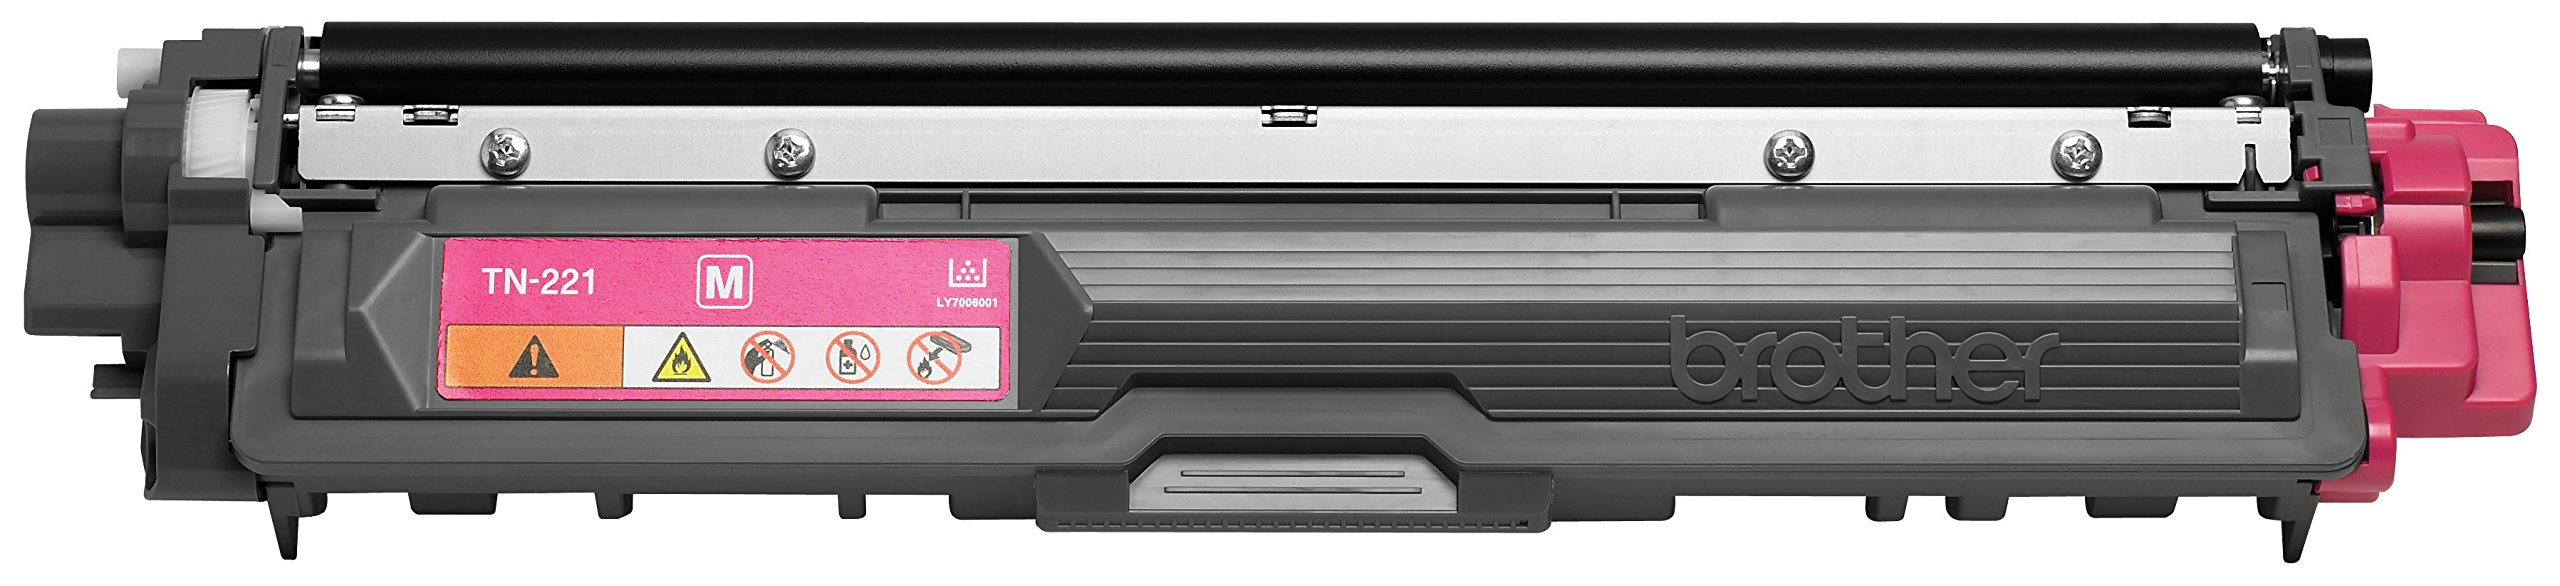 Brother Genuine TN221M Color Laser Magenta Toner Cartridge by Brother